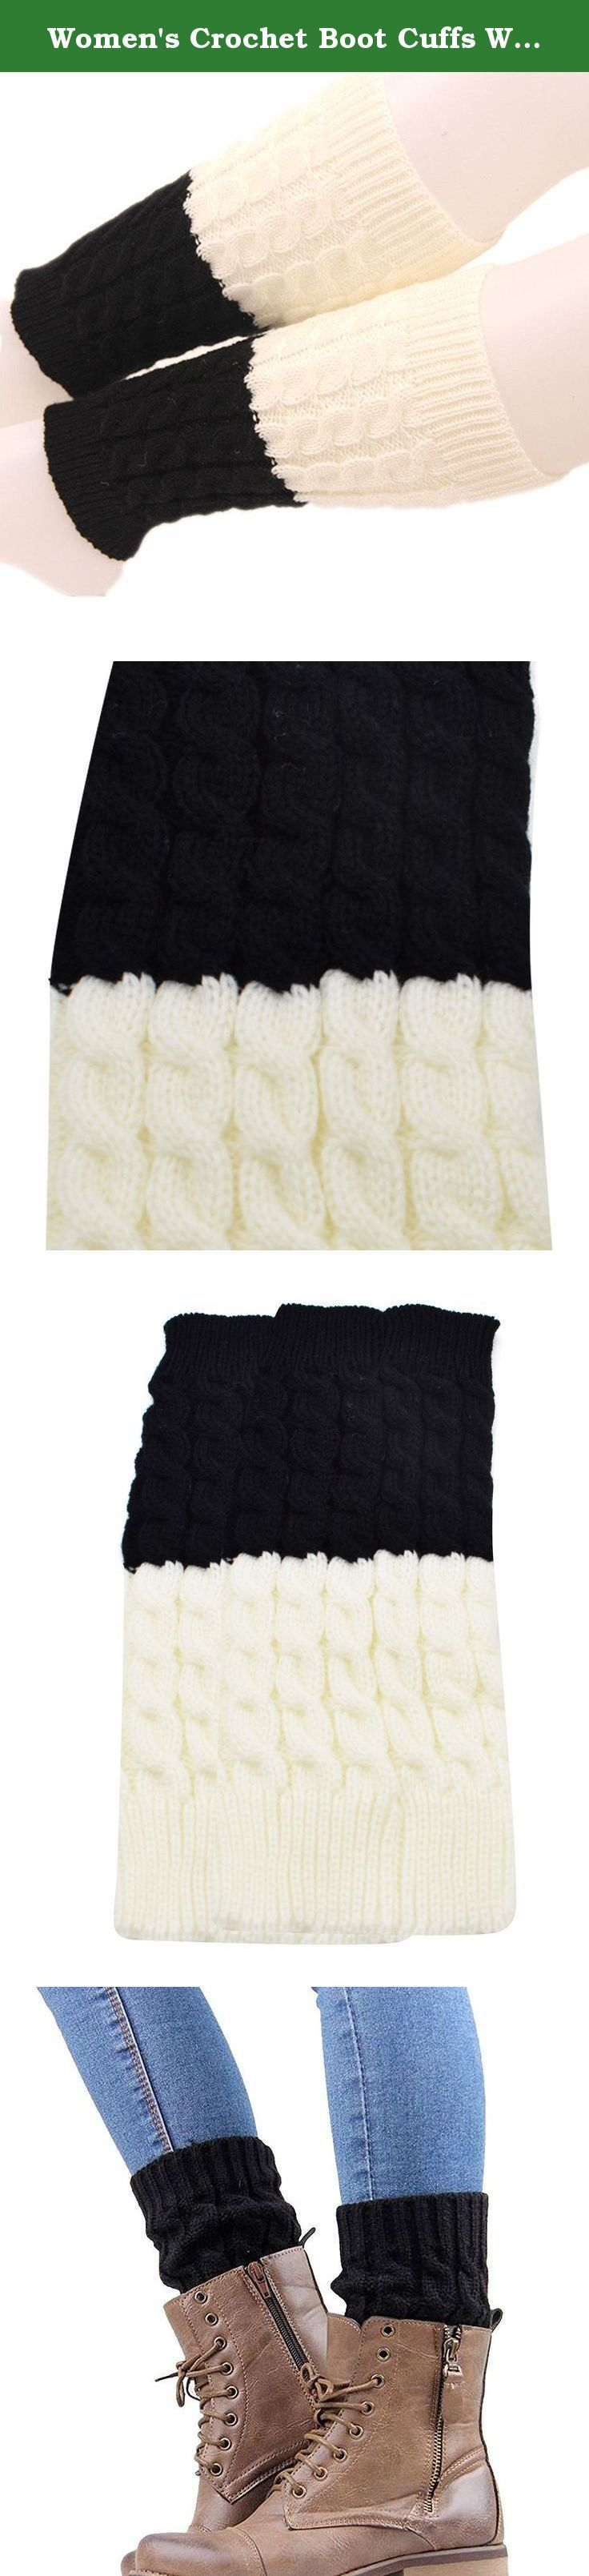 Women's Crochet Boot Cuffs Winter Cable Knit Leg Warmers Boot Cover Topper Cuff A Black White. Love the boot and leg warmer look? These boot toppers are definitely the style boss in that department. These boot toppers can give you the stylish peek effect. Grab these boot toppers for yourself or as a gift now! A must buy in winter season, keep your leg warm and add glamour to your outfit We sell only reliable products, it's our goal to make every customer satisfied with our services!...